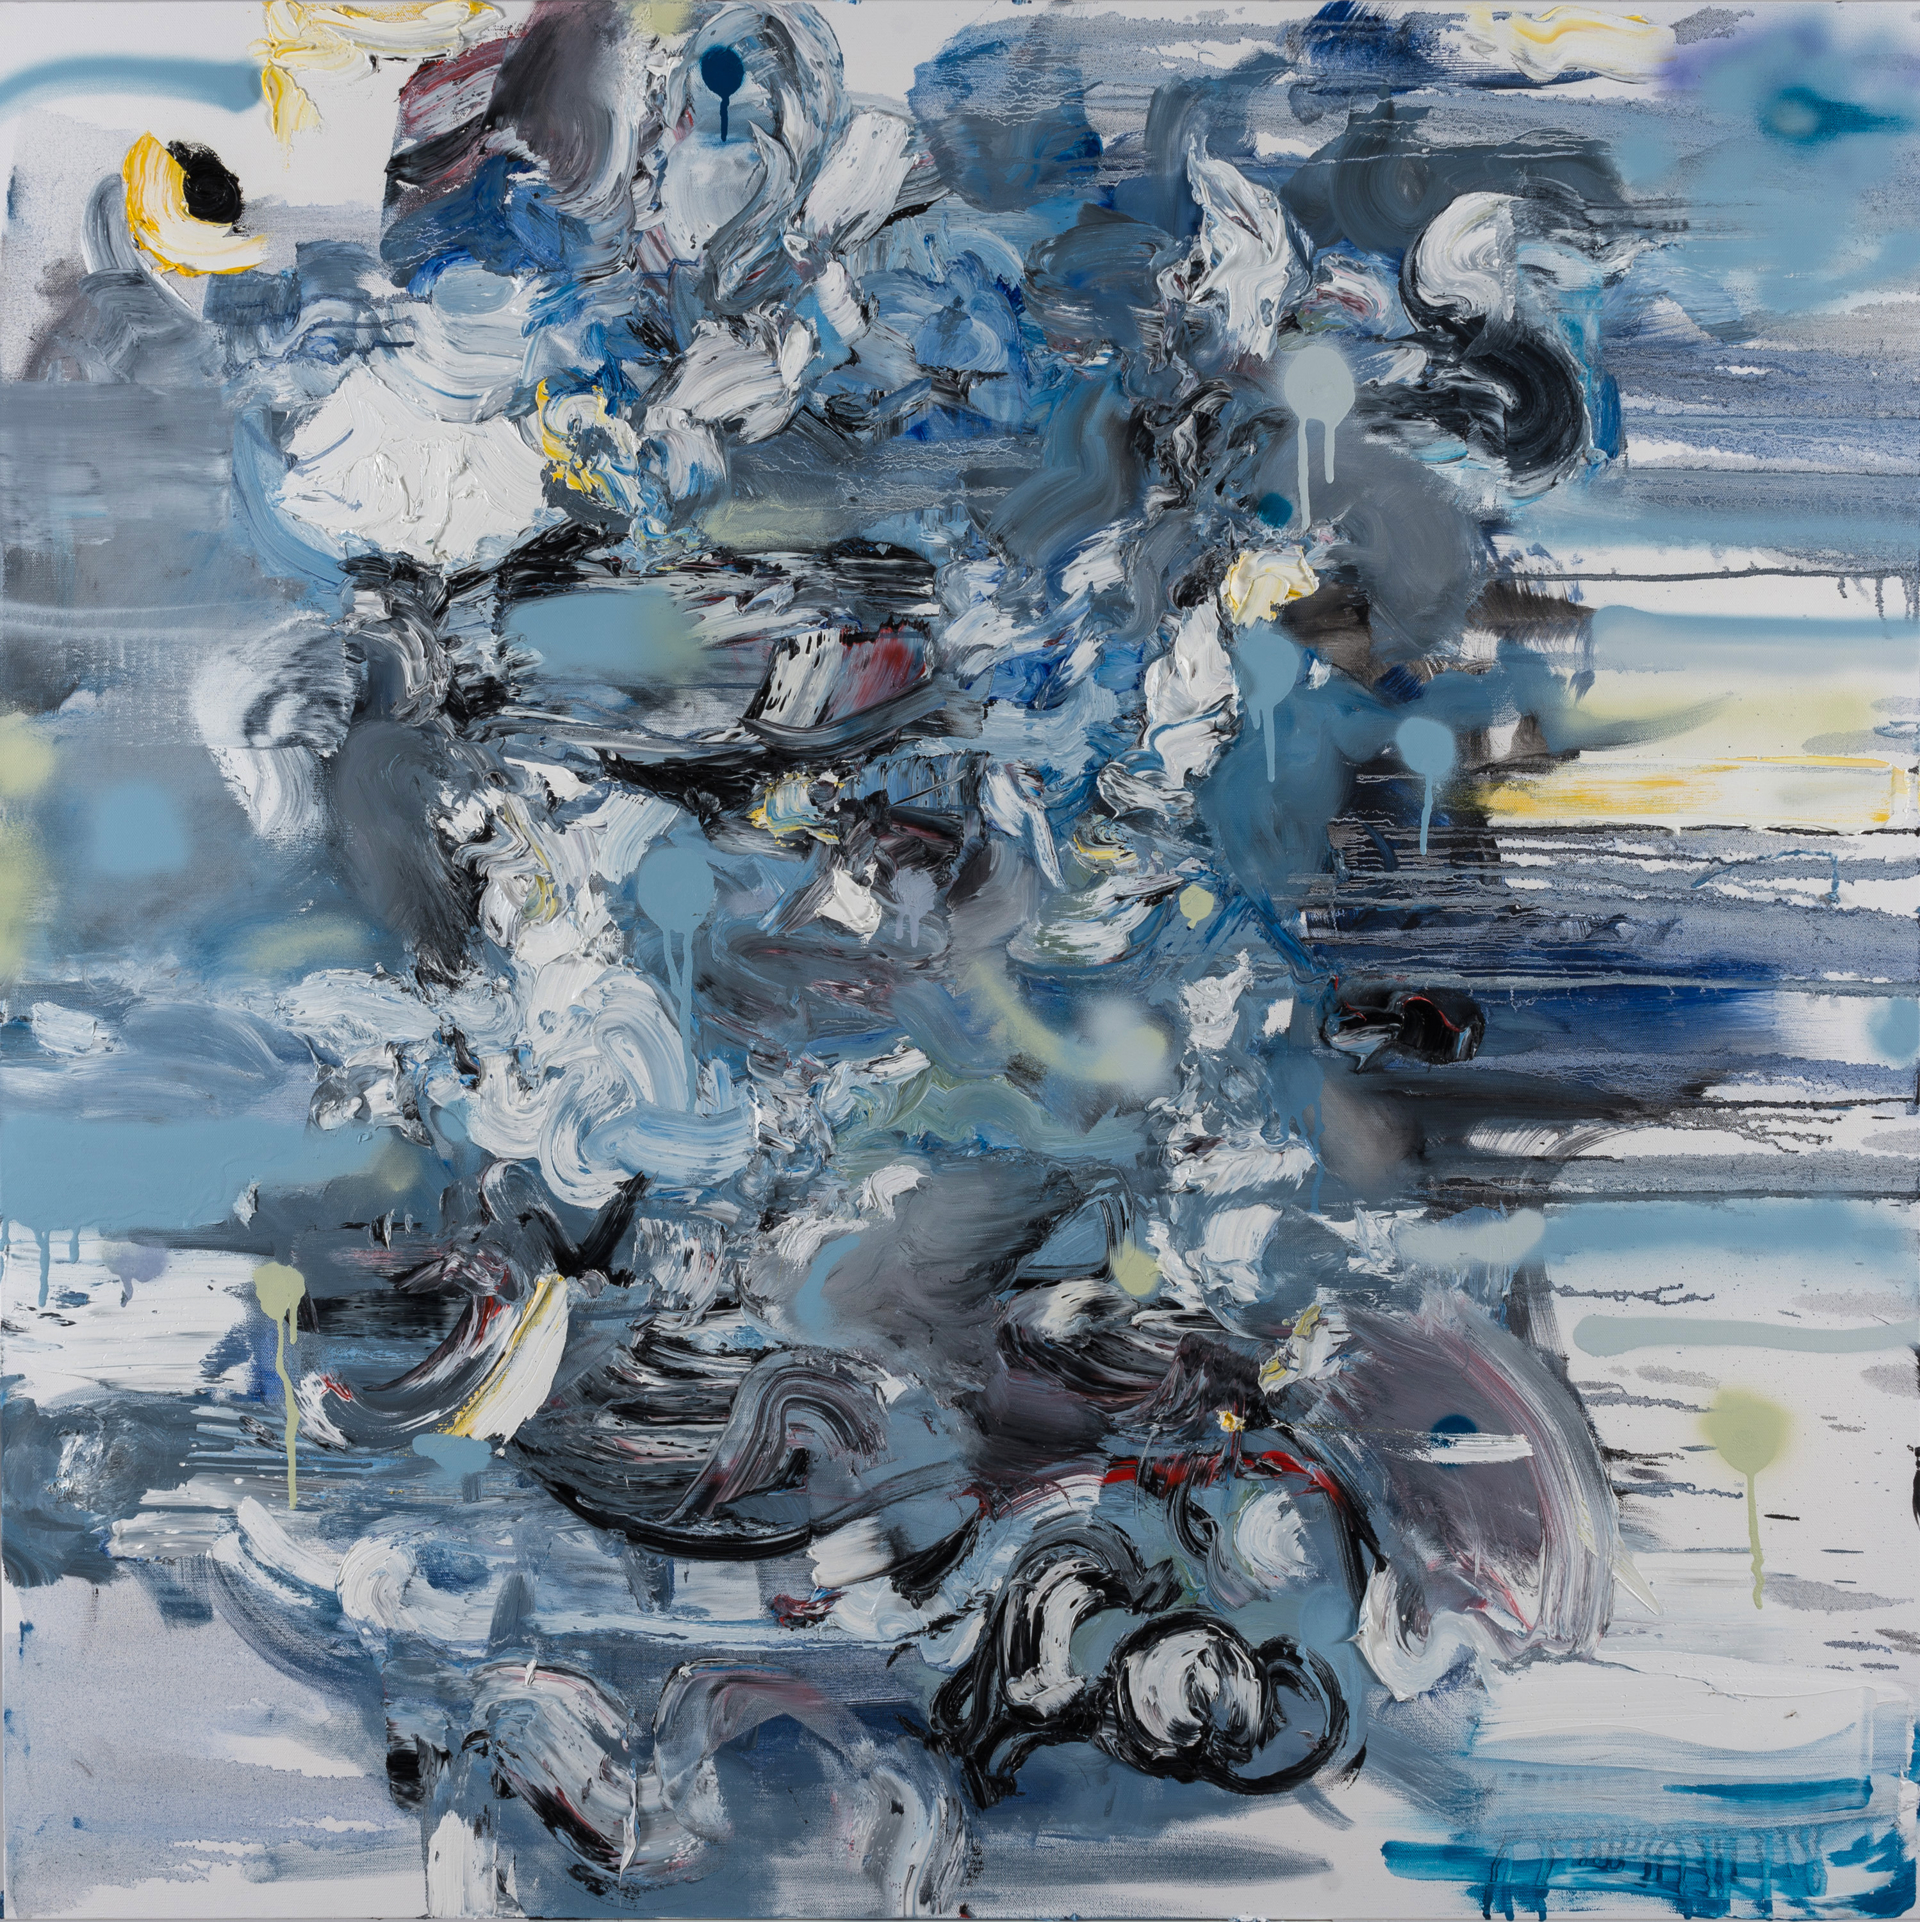 Untitled (Composition in Blue) (Sold) by Doug Kacena